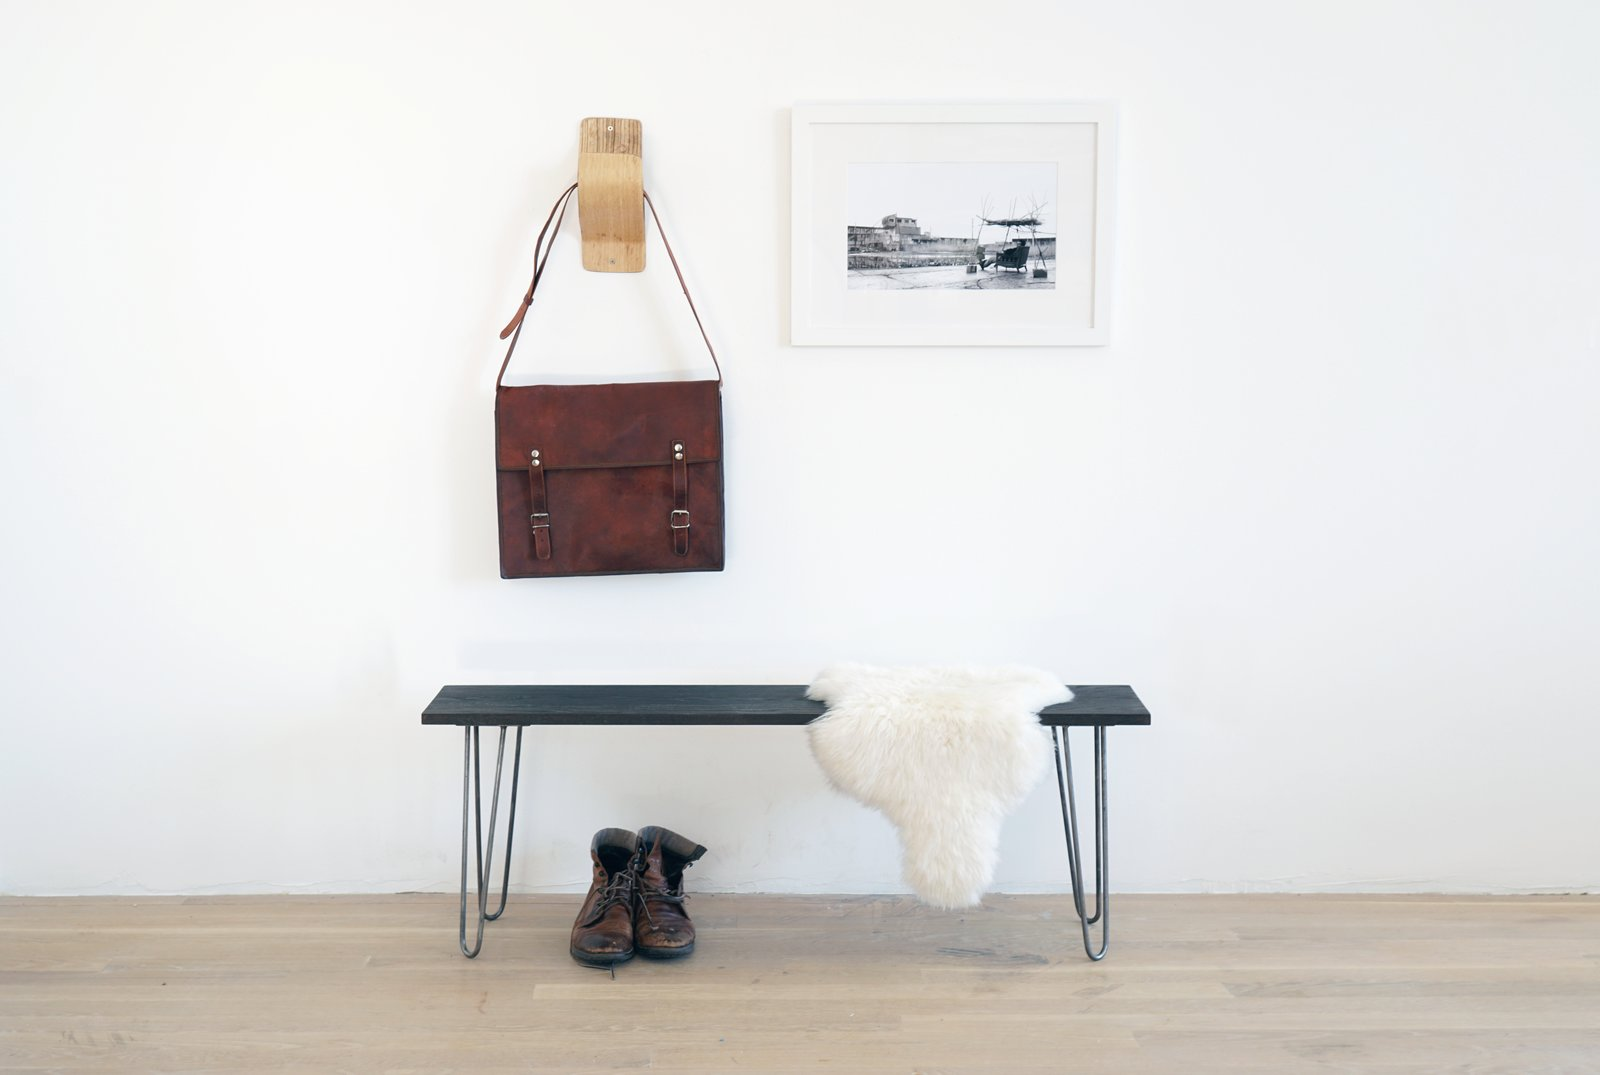 Photo 10 of 10 in Dwell Made Presents: DIY Black Oak Bench